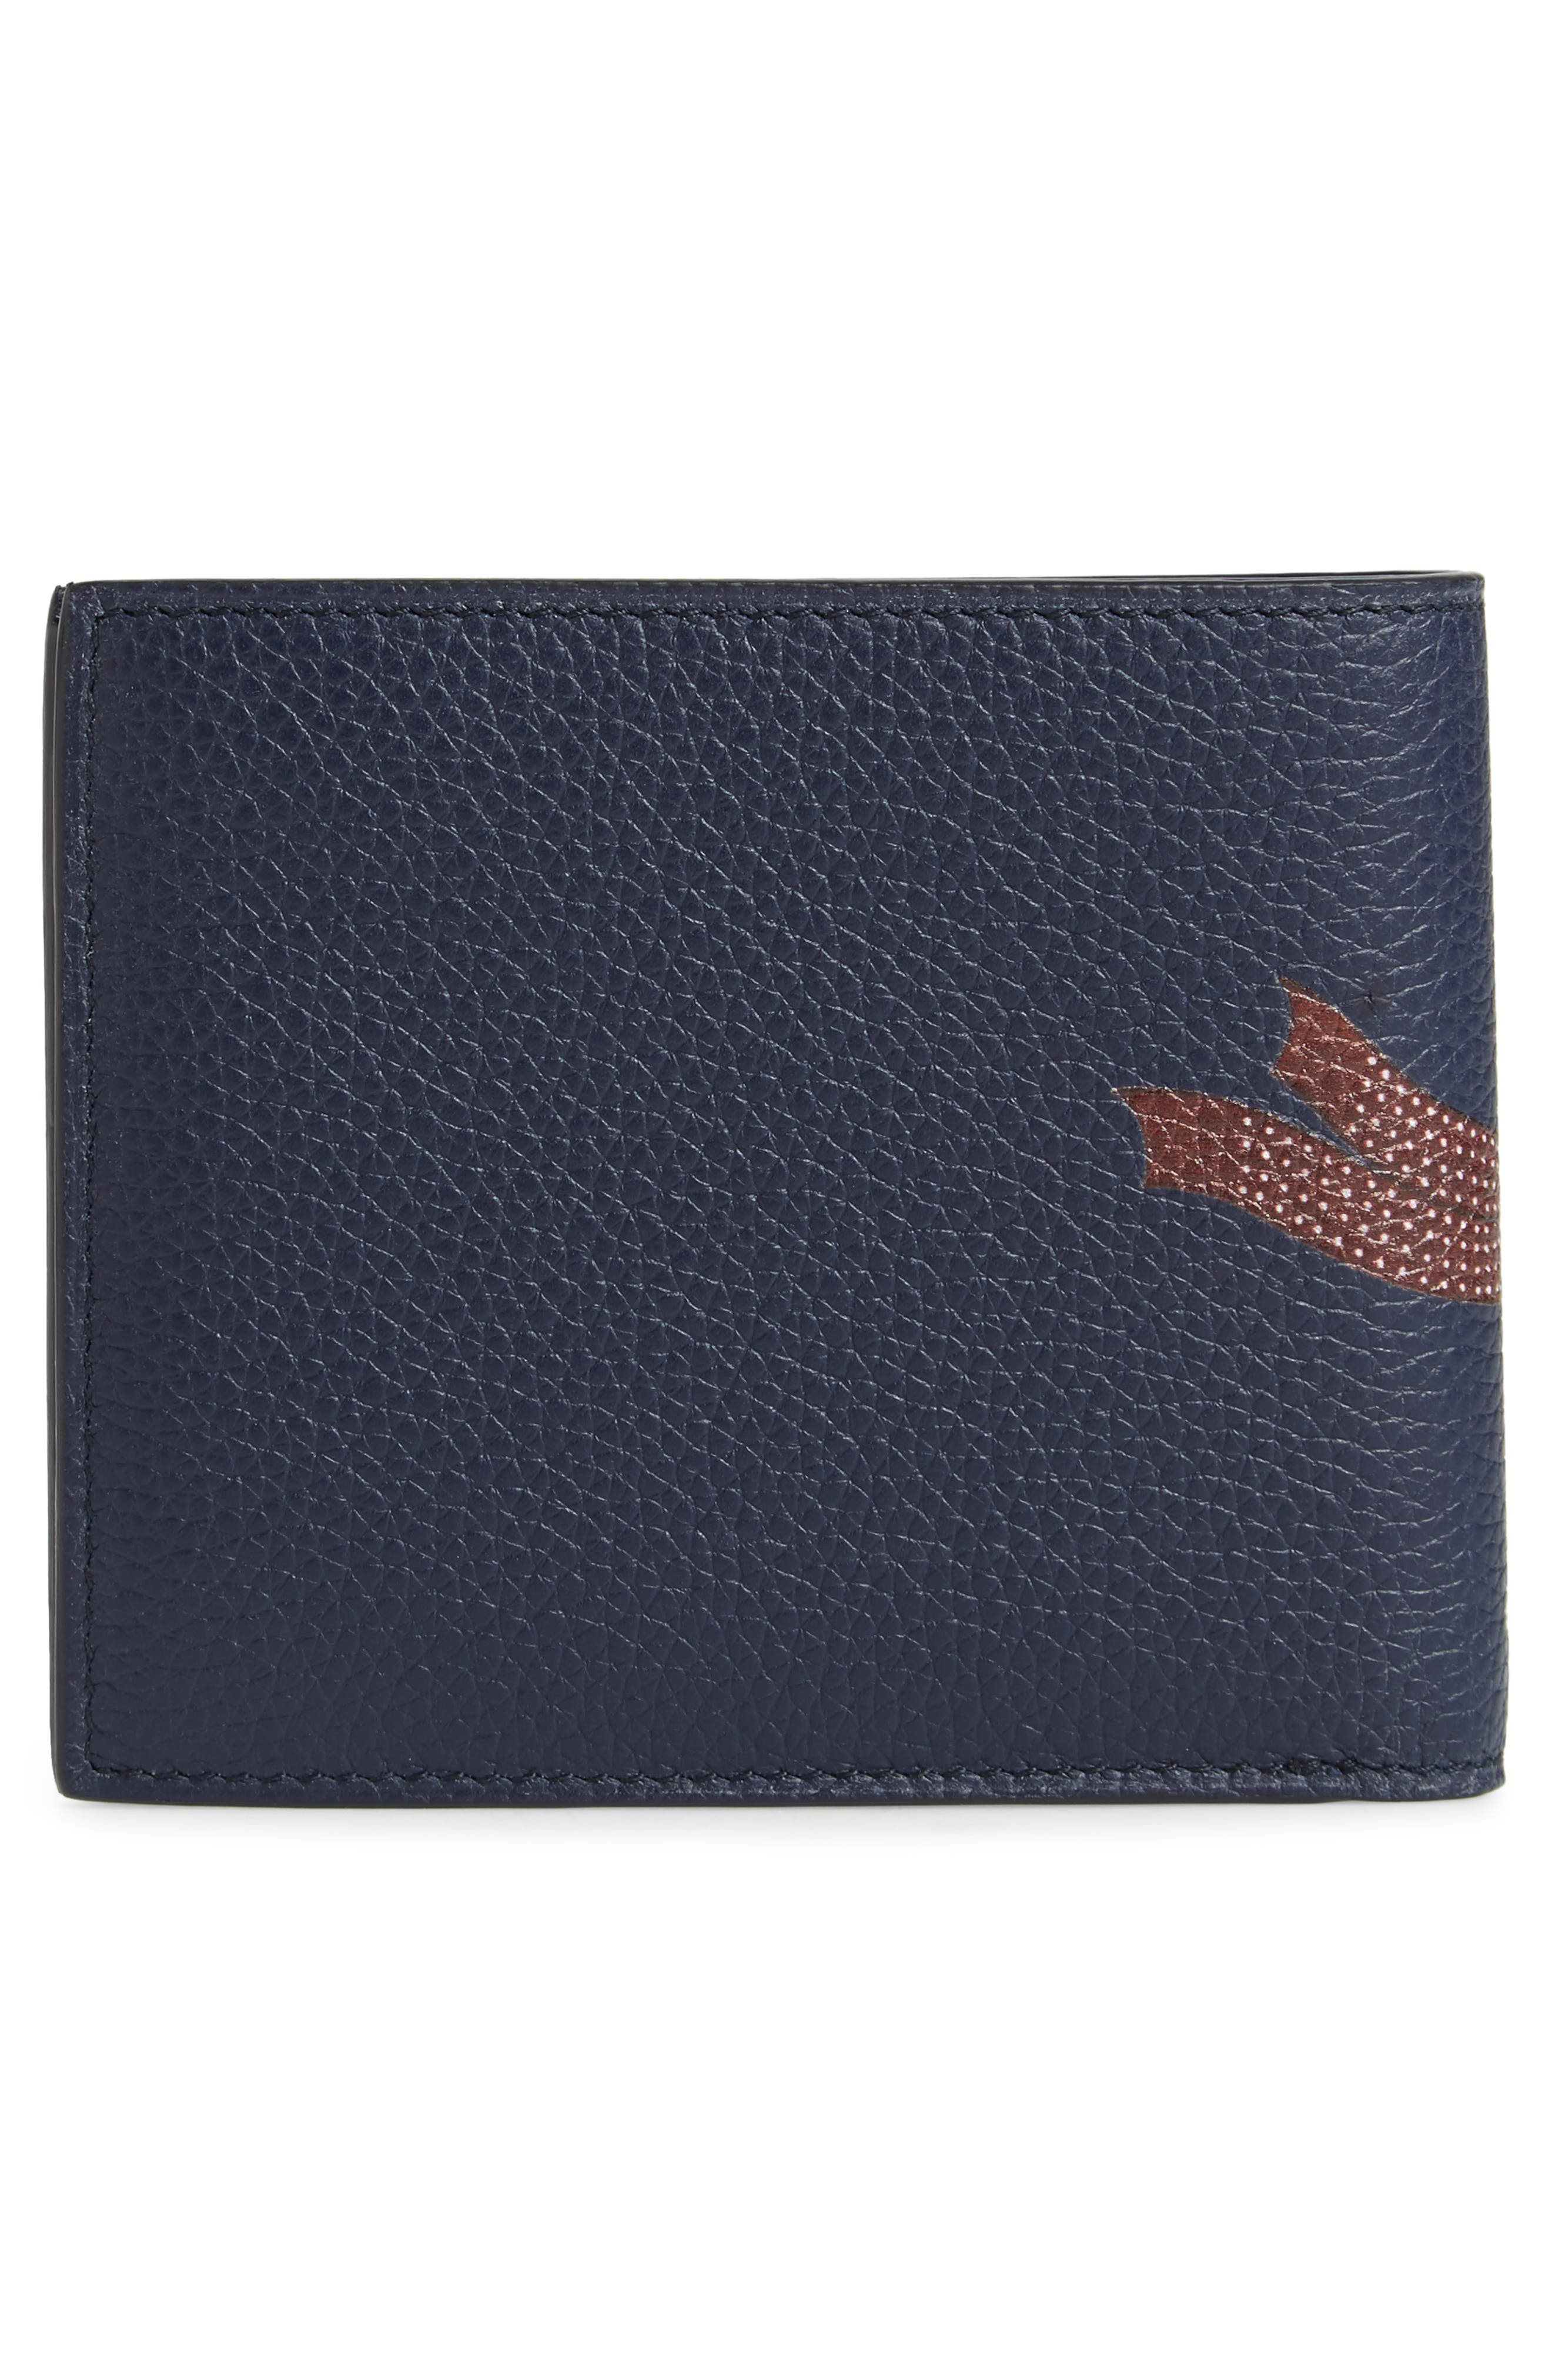 Boston Bulldog Leather Bifold Wallet,                             Alternate thumbnail 3, color,                             Navy